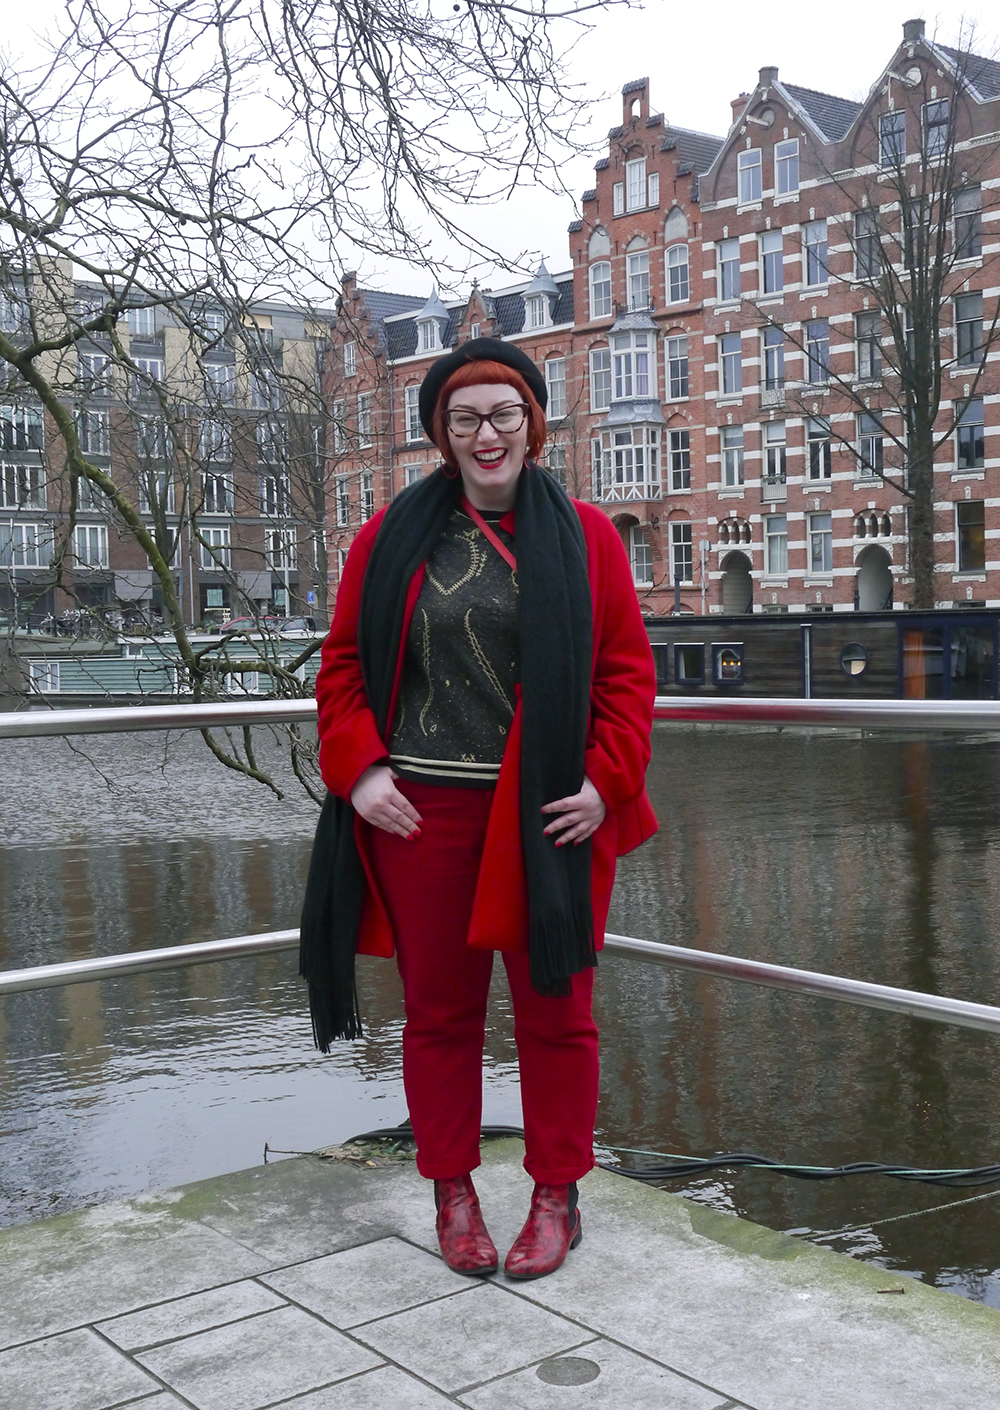 Cosy and bright outfit for a chilly Amsterdam day